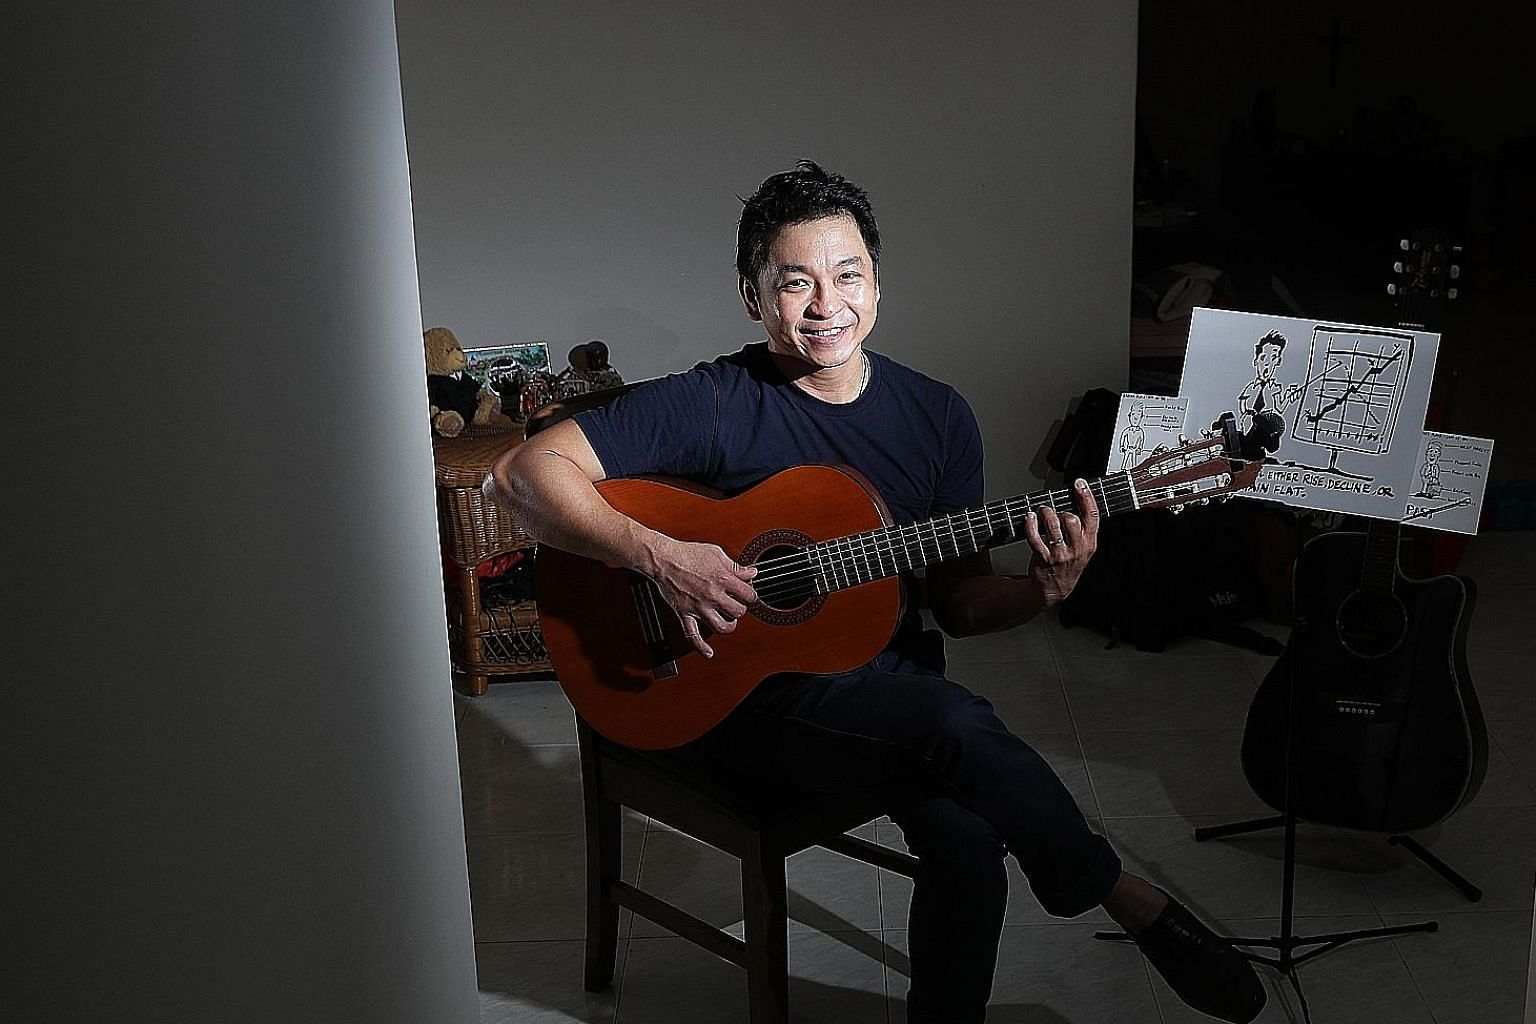 Before joining Money FM 89.3, Mr Desmond Wong, 41, spent several years as a dealer with a stockbroking company and had a stint as a radio presenter with a local radio news station. From 2011 until last year, when he took time off to be a homemaker an